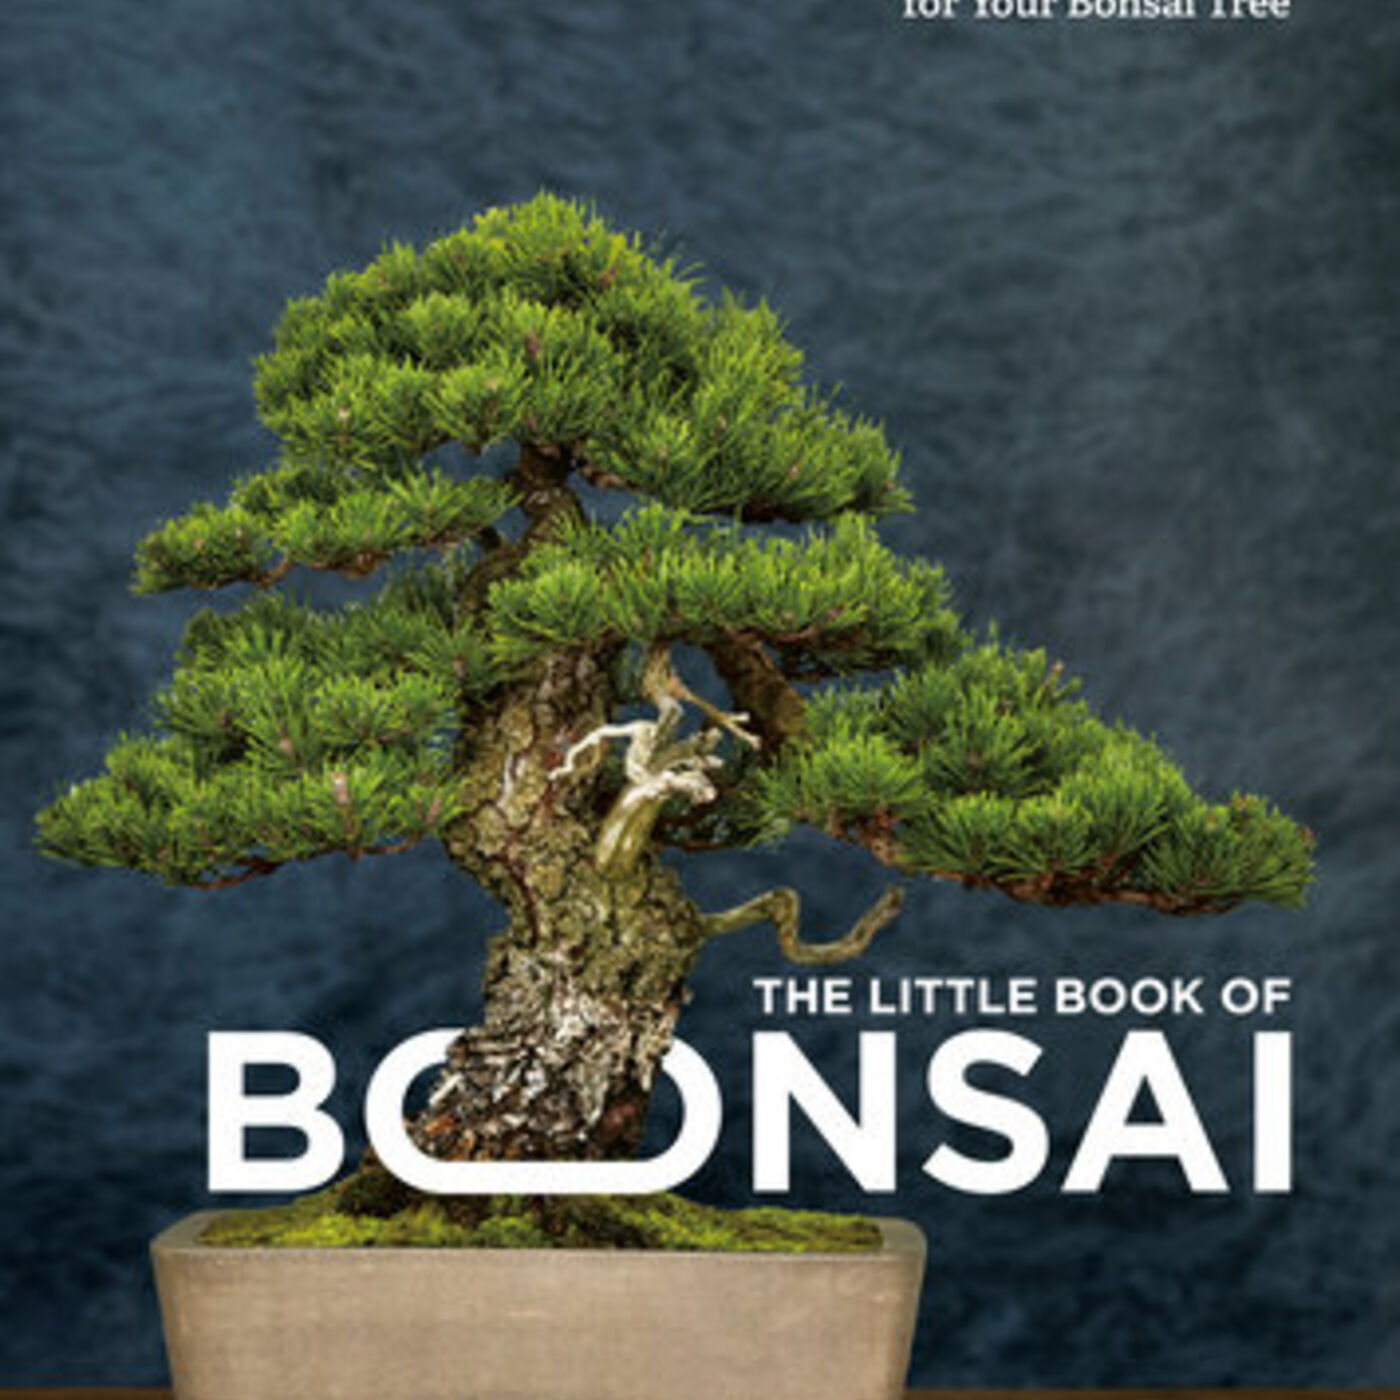 Stories Behind The Little Book of Bonsai